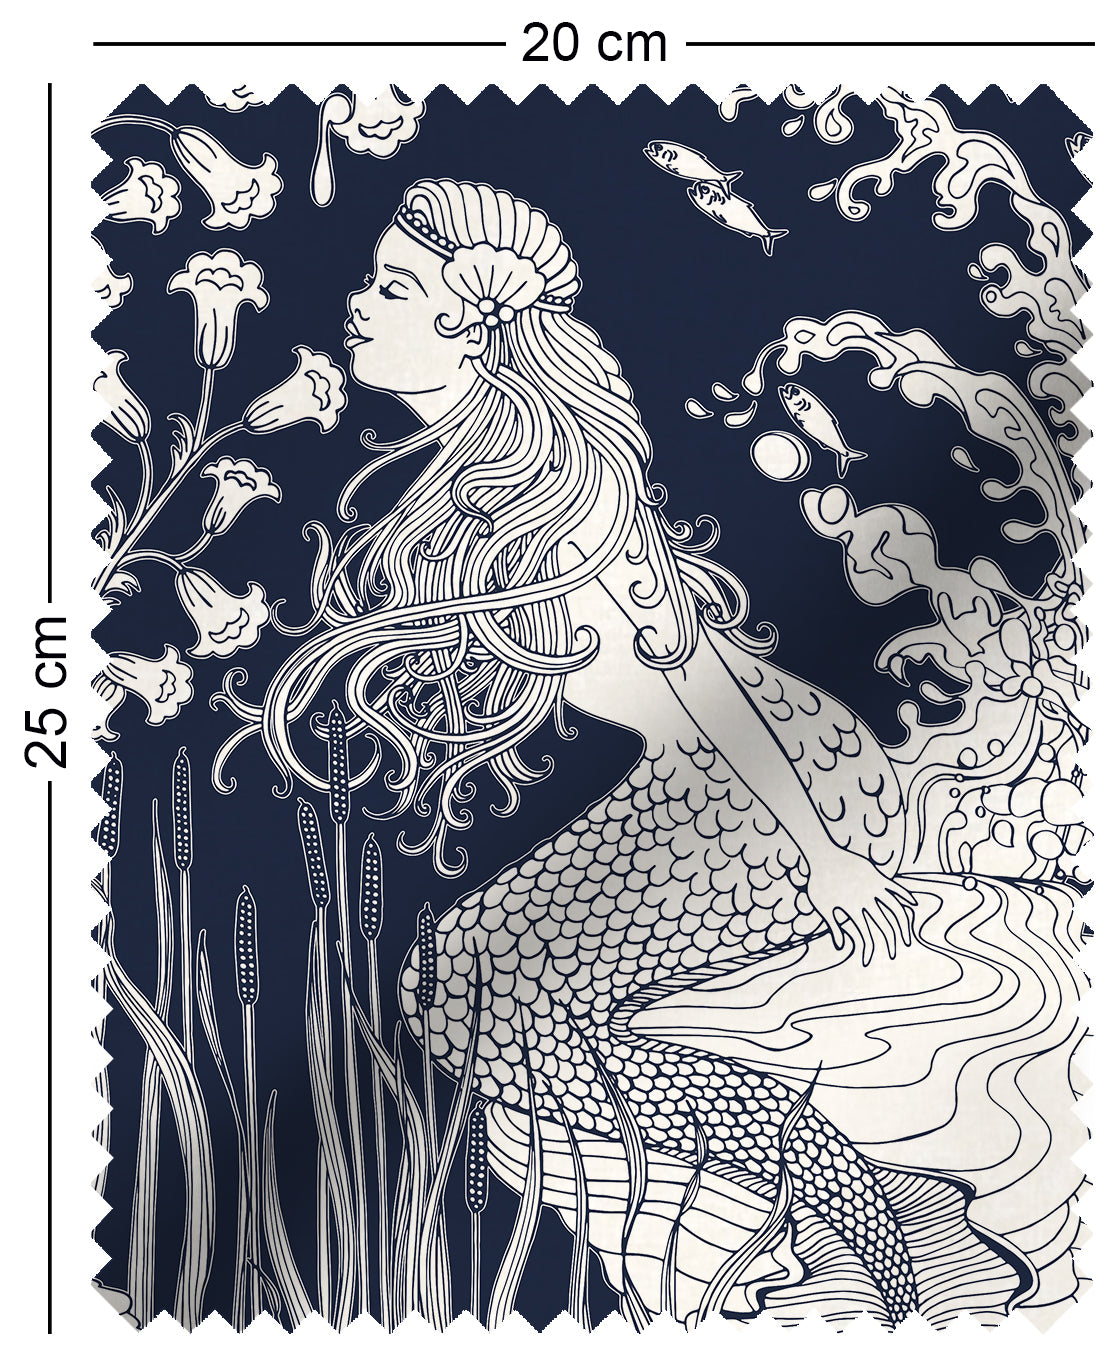 fabric swatch with art nouveau mermaid design in navy blue aubrey beardsley